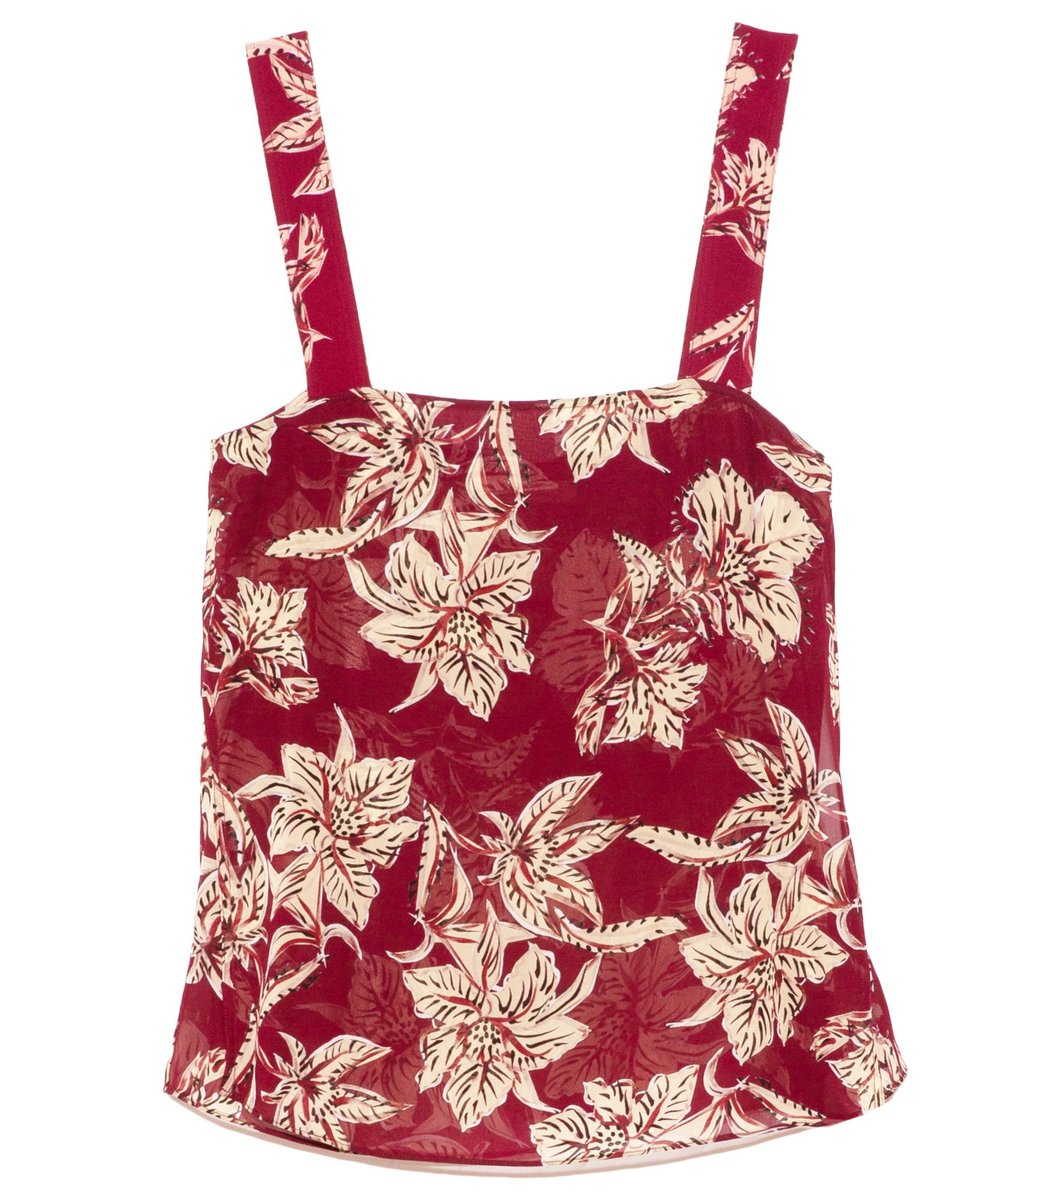 Dorothee Schumacher Tops Translucent Florals Top in Bordeaux/Beige Floral